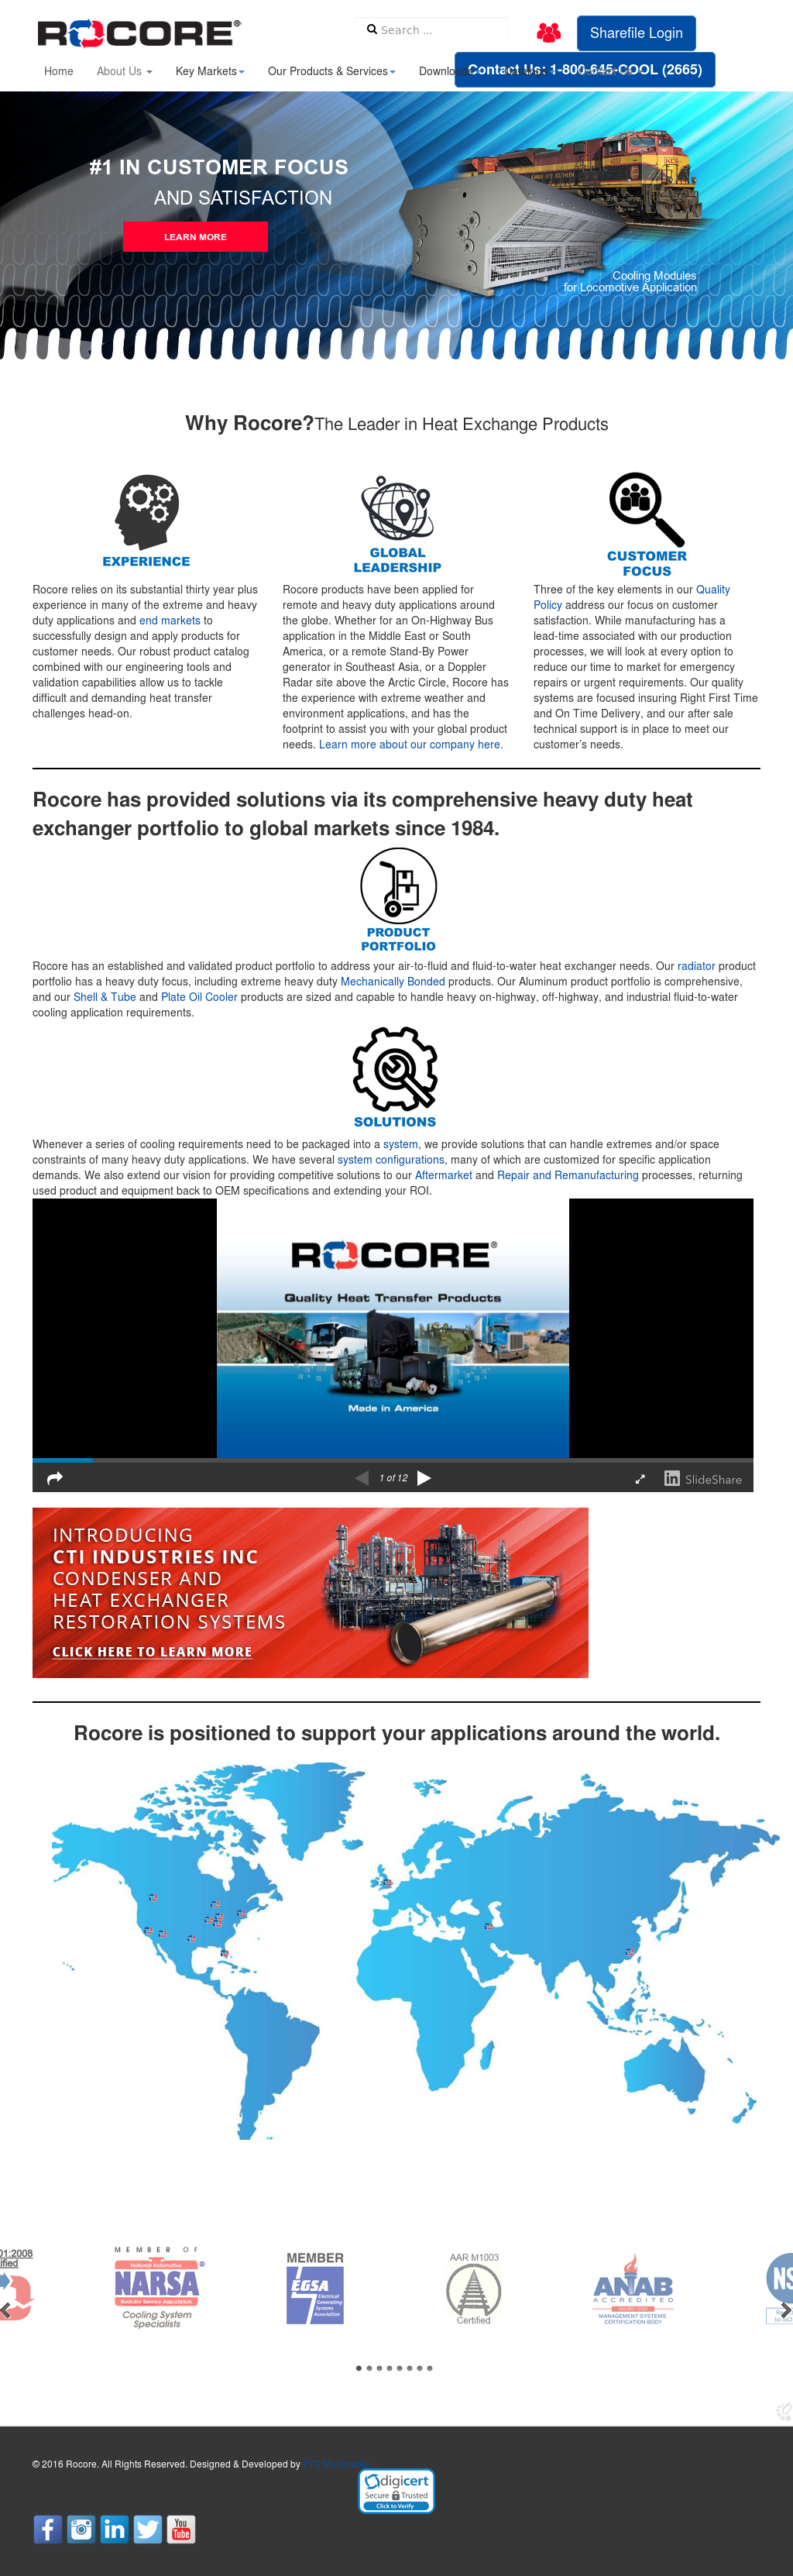 Rocore Competitors, Revenue and Employees - Owler Company